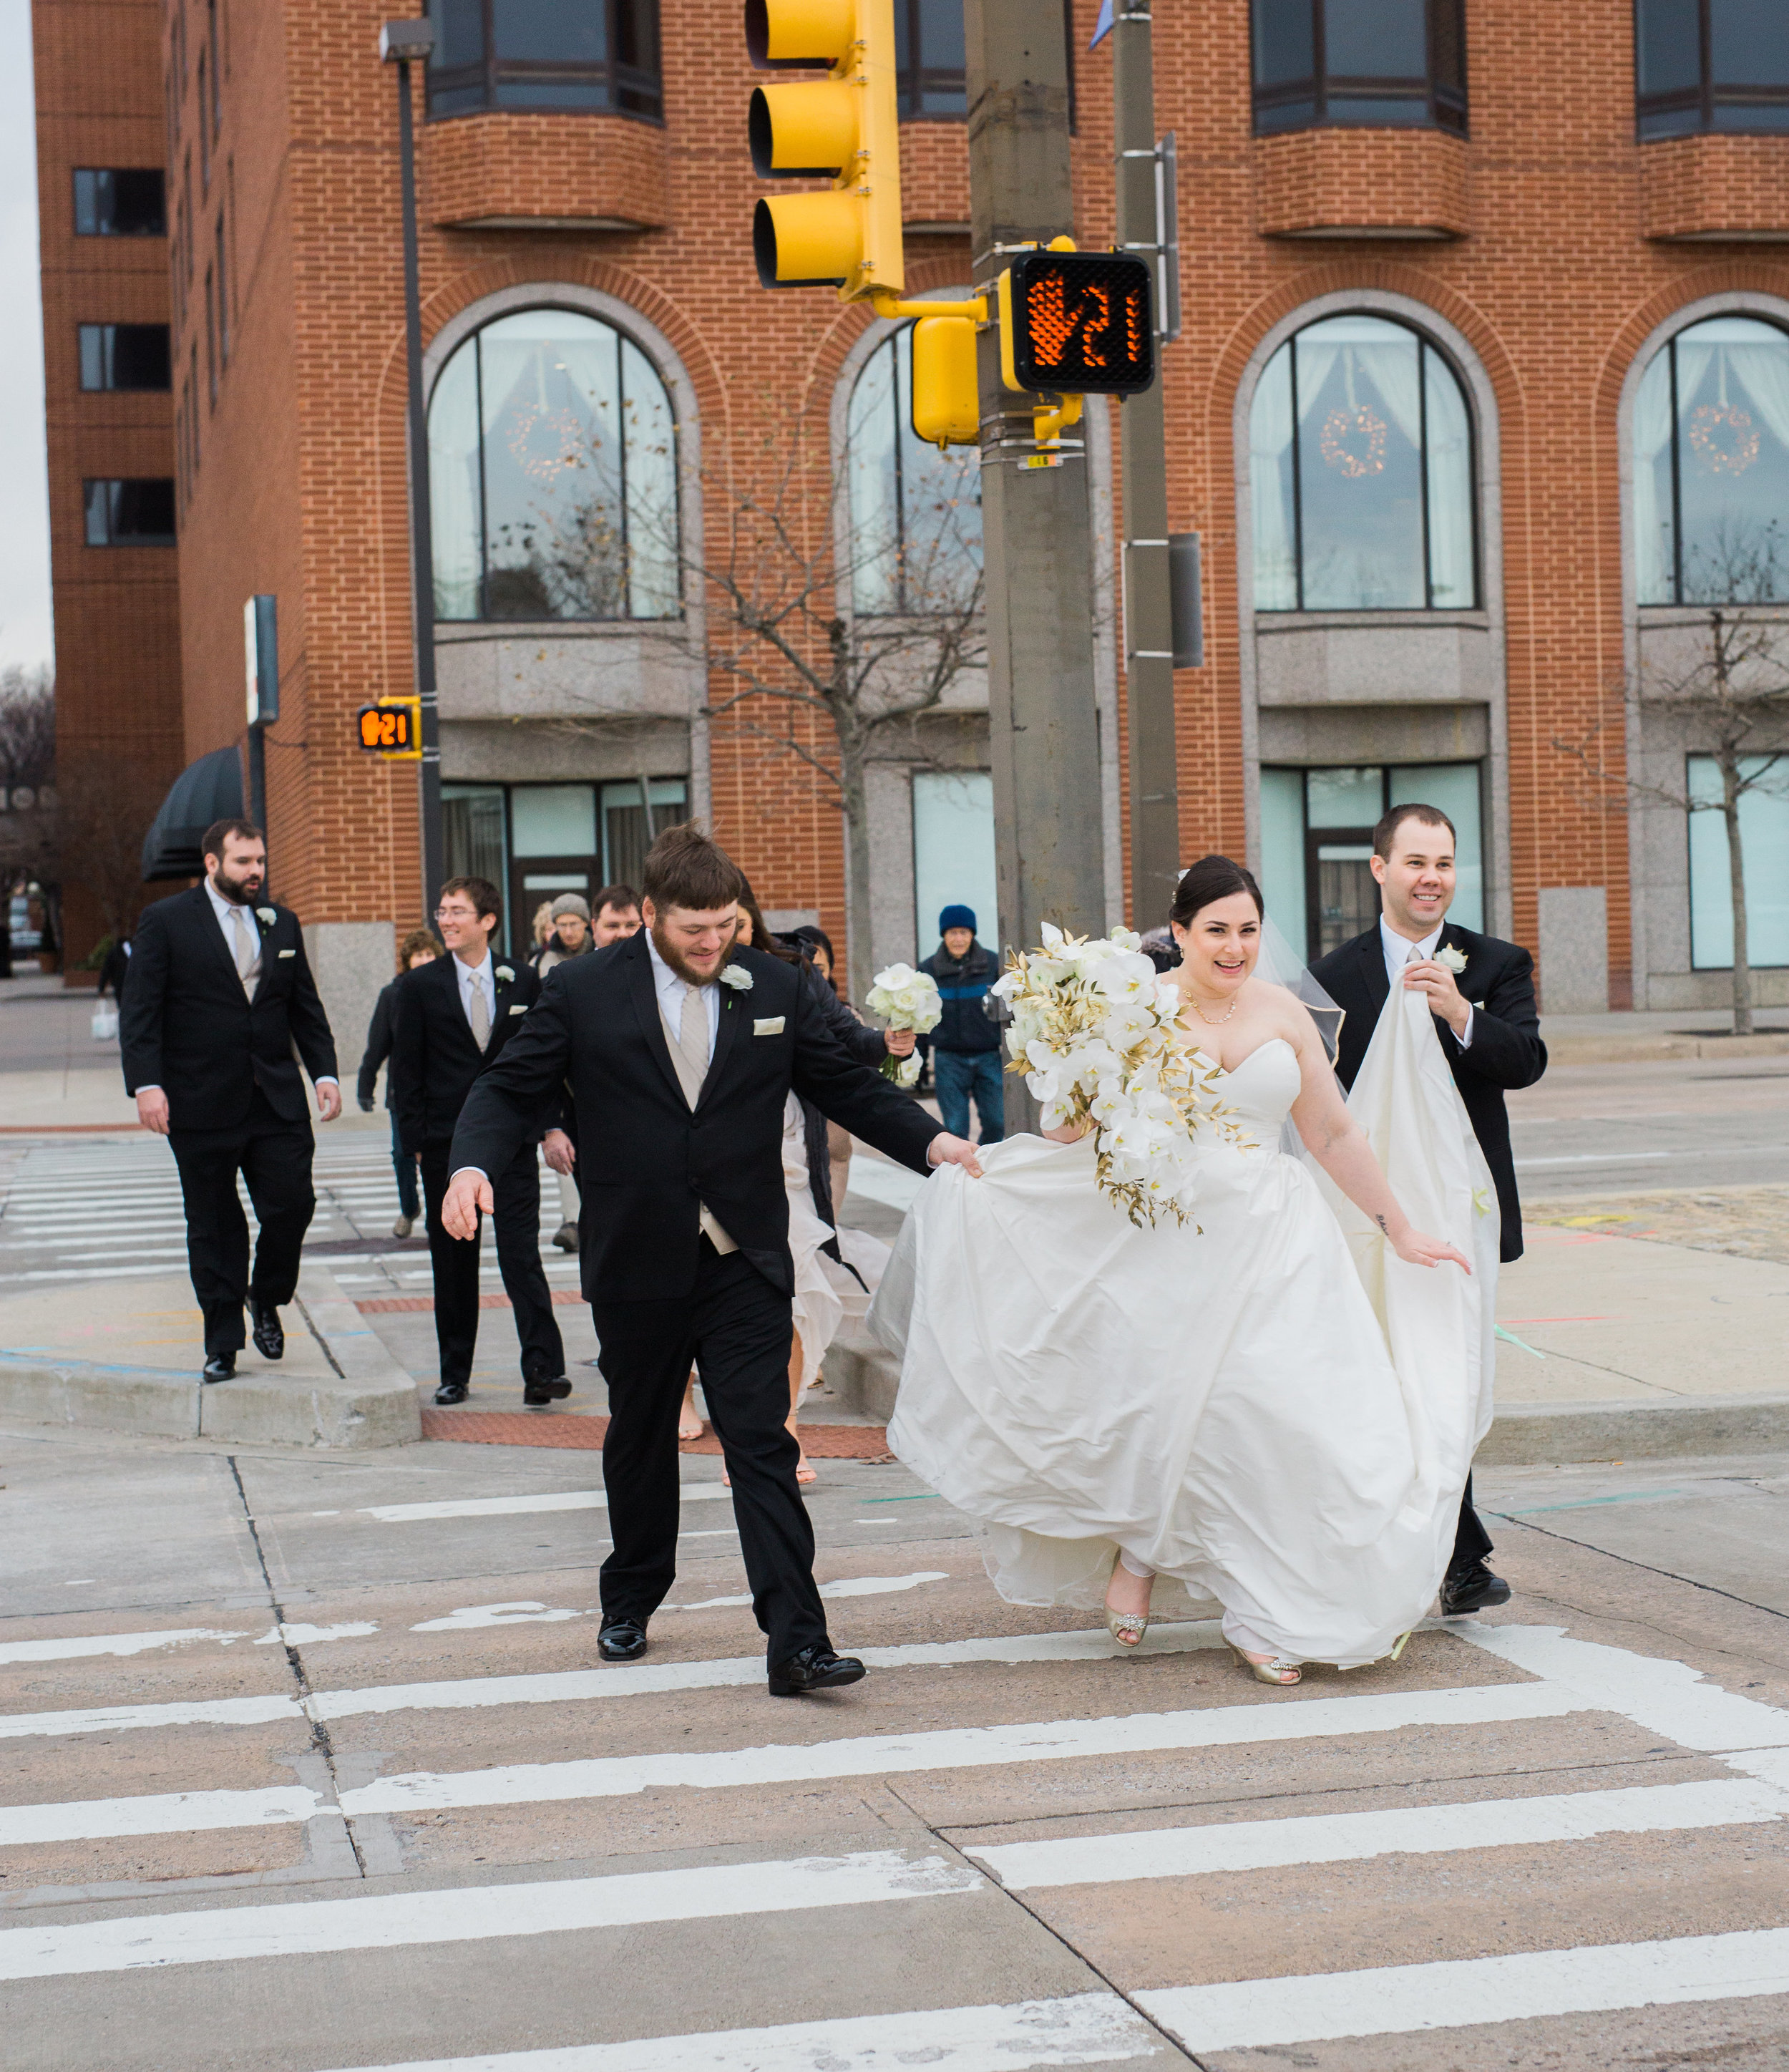 Center Club Wedding by East Made Event Company Baltimore Maryland Fine Art Wedding Planner and Focus Bay Photography175.jpg